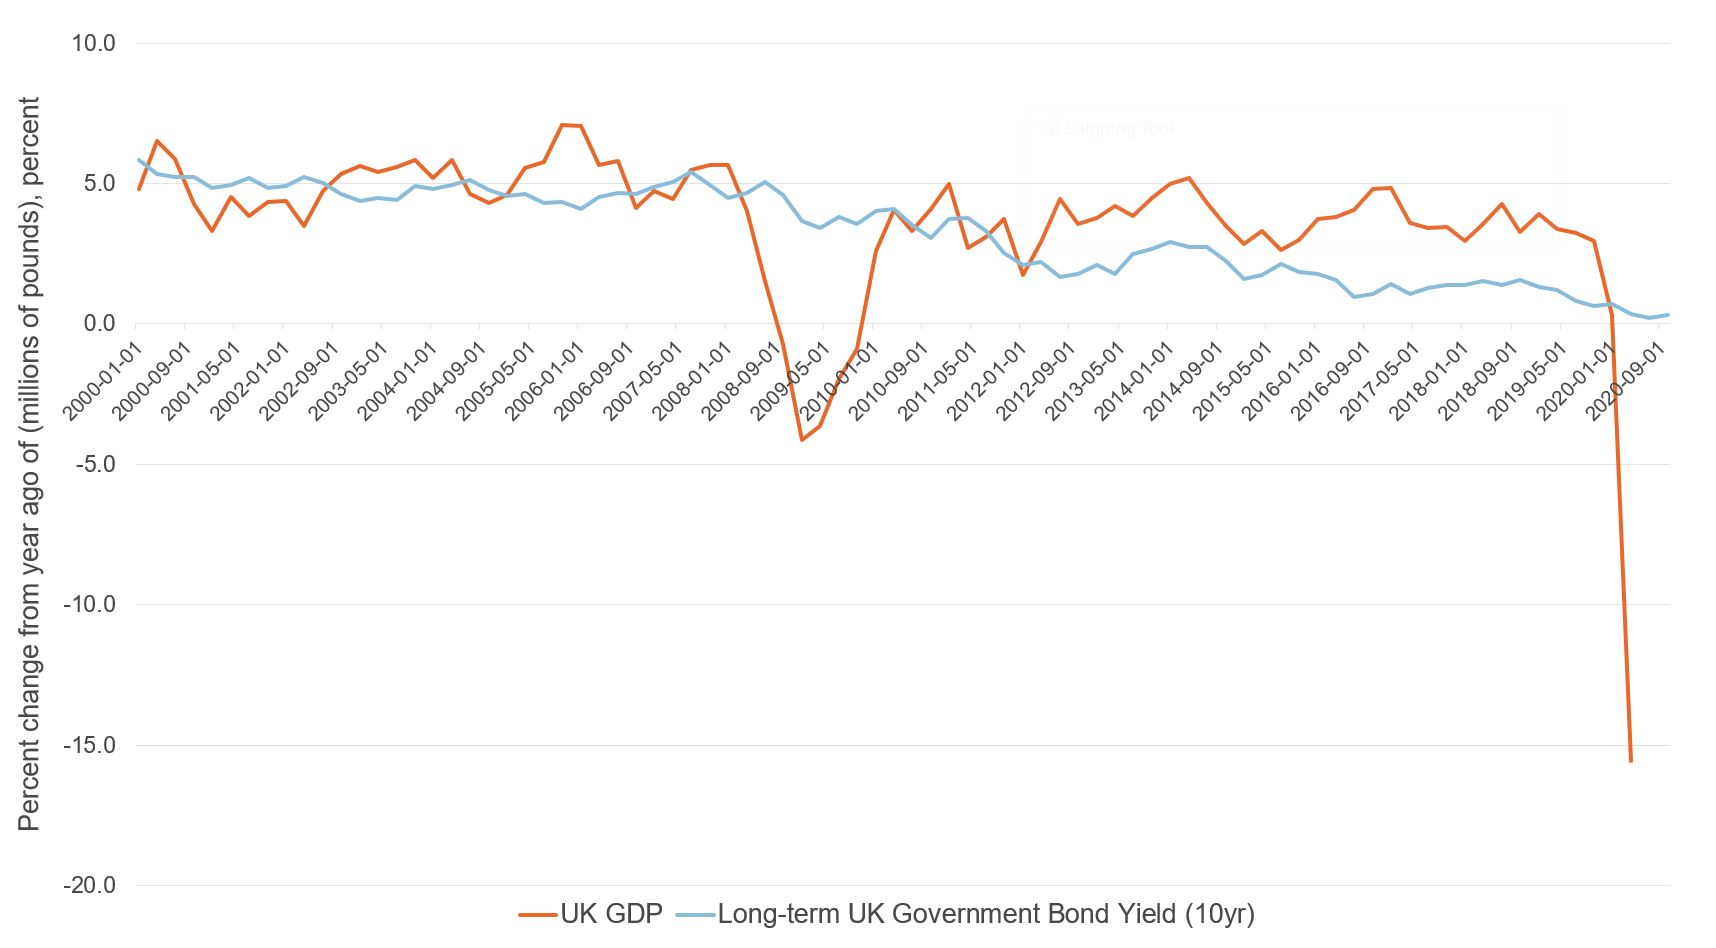 Figure showing GDP & 10 year bonds